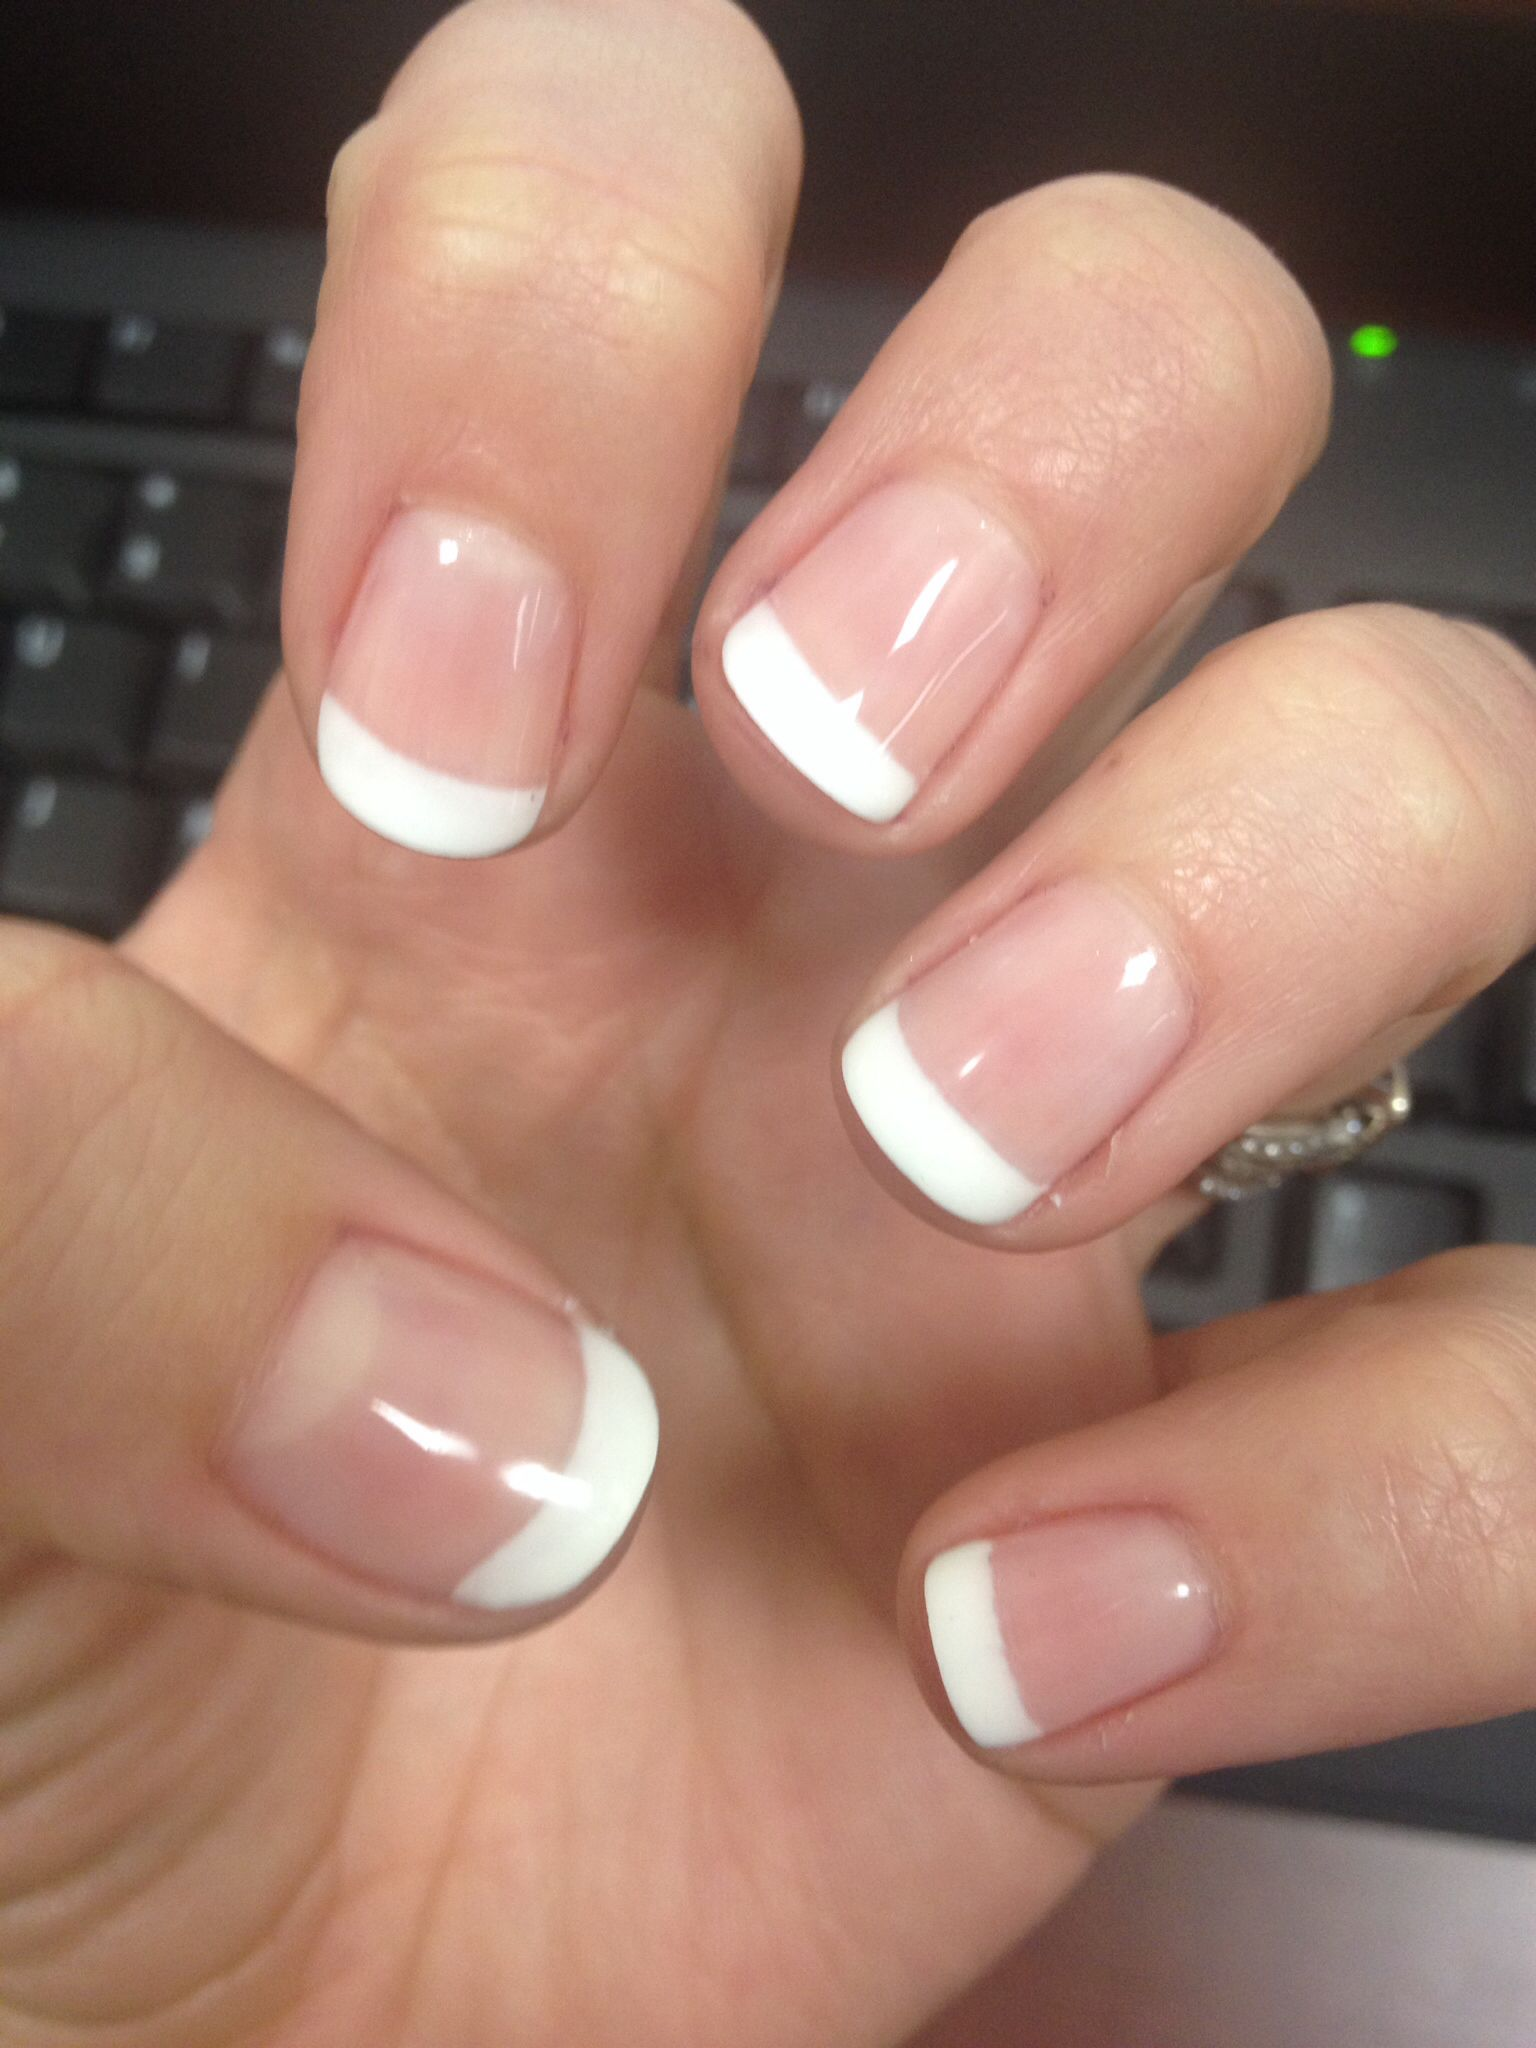 french manicure shellac nails hair nails and skin pinterest shellac nails and manicure. Black Bedroom Furniture Sets. Home Design Ideas